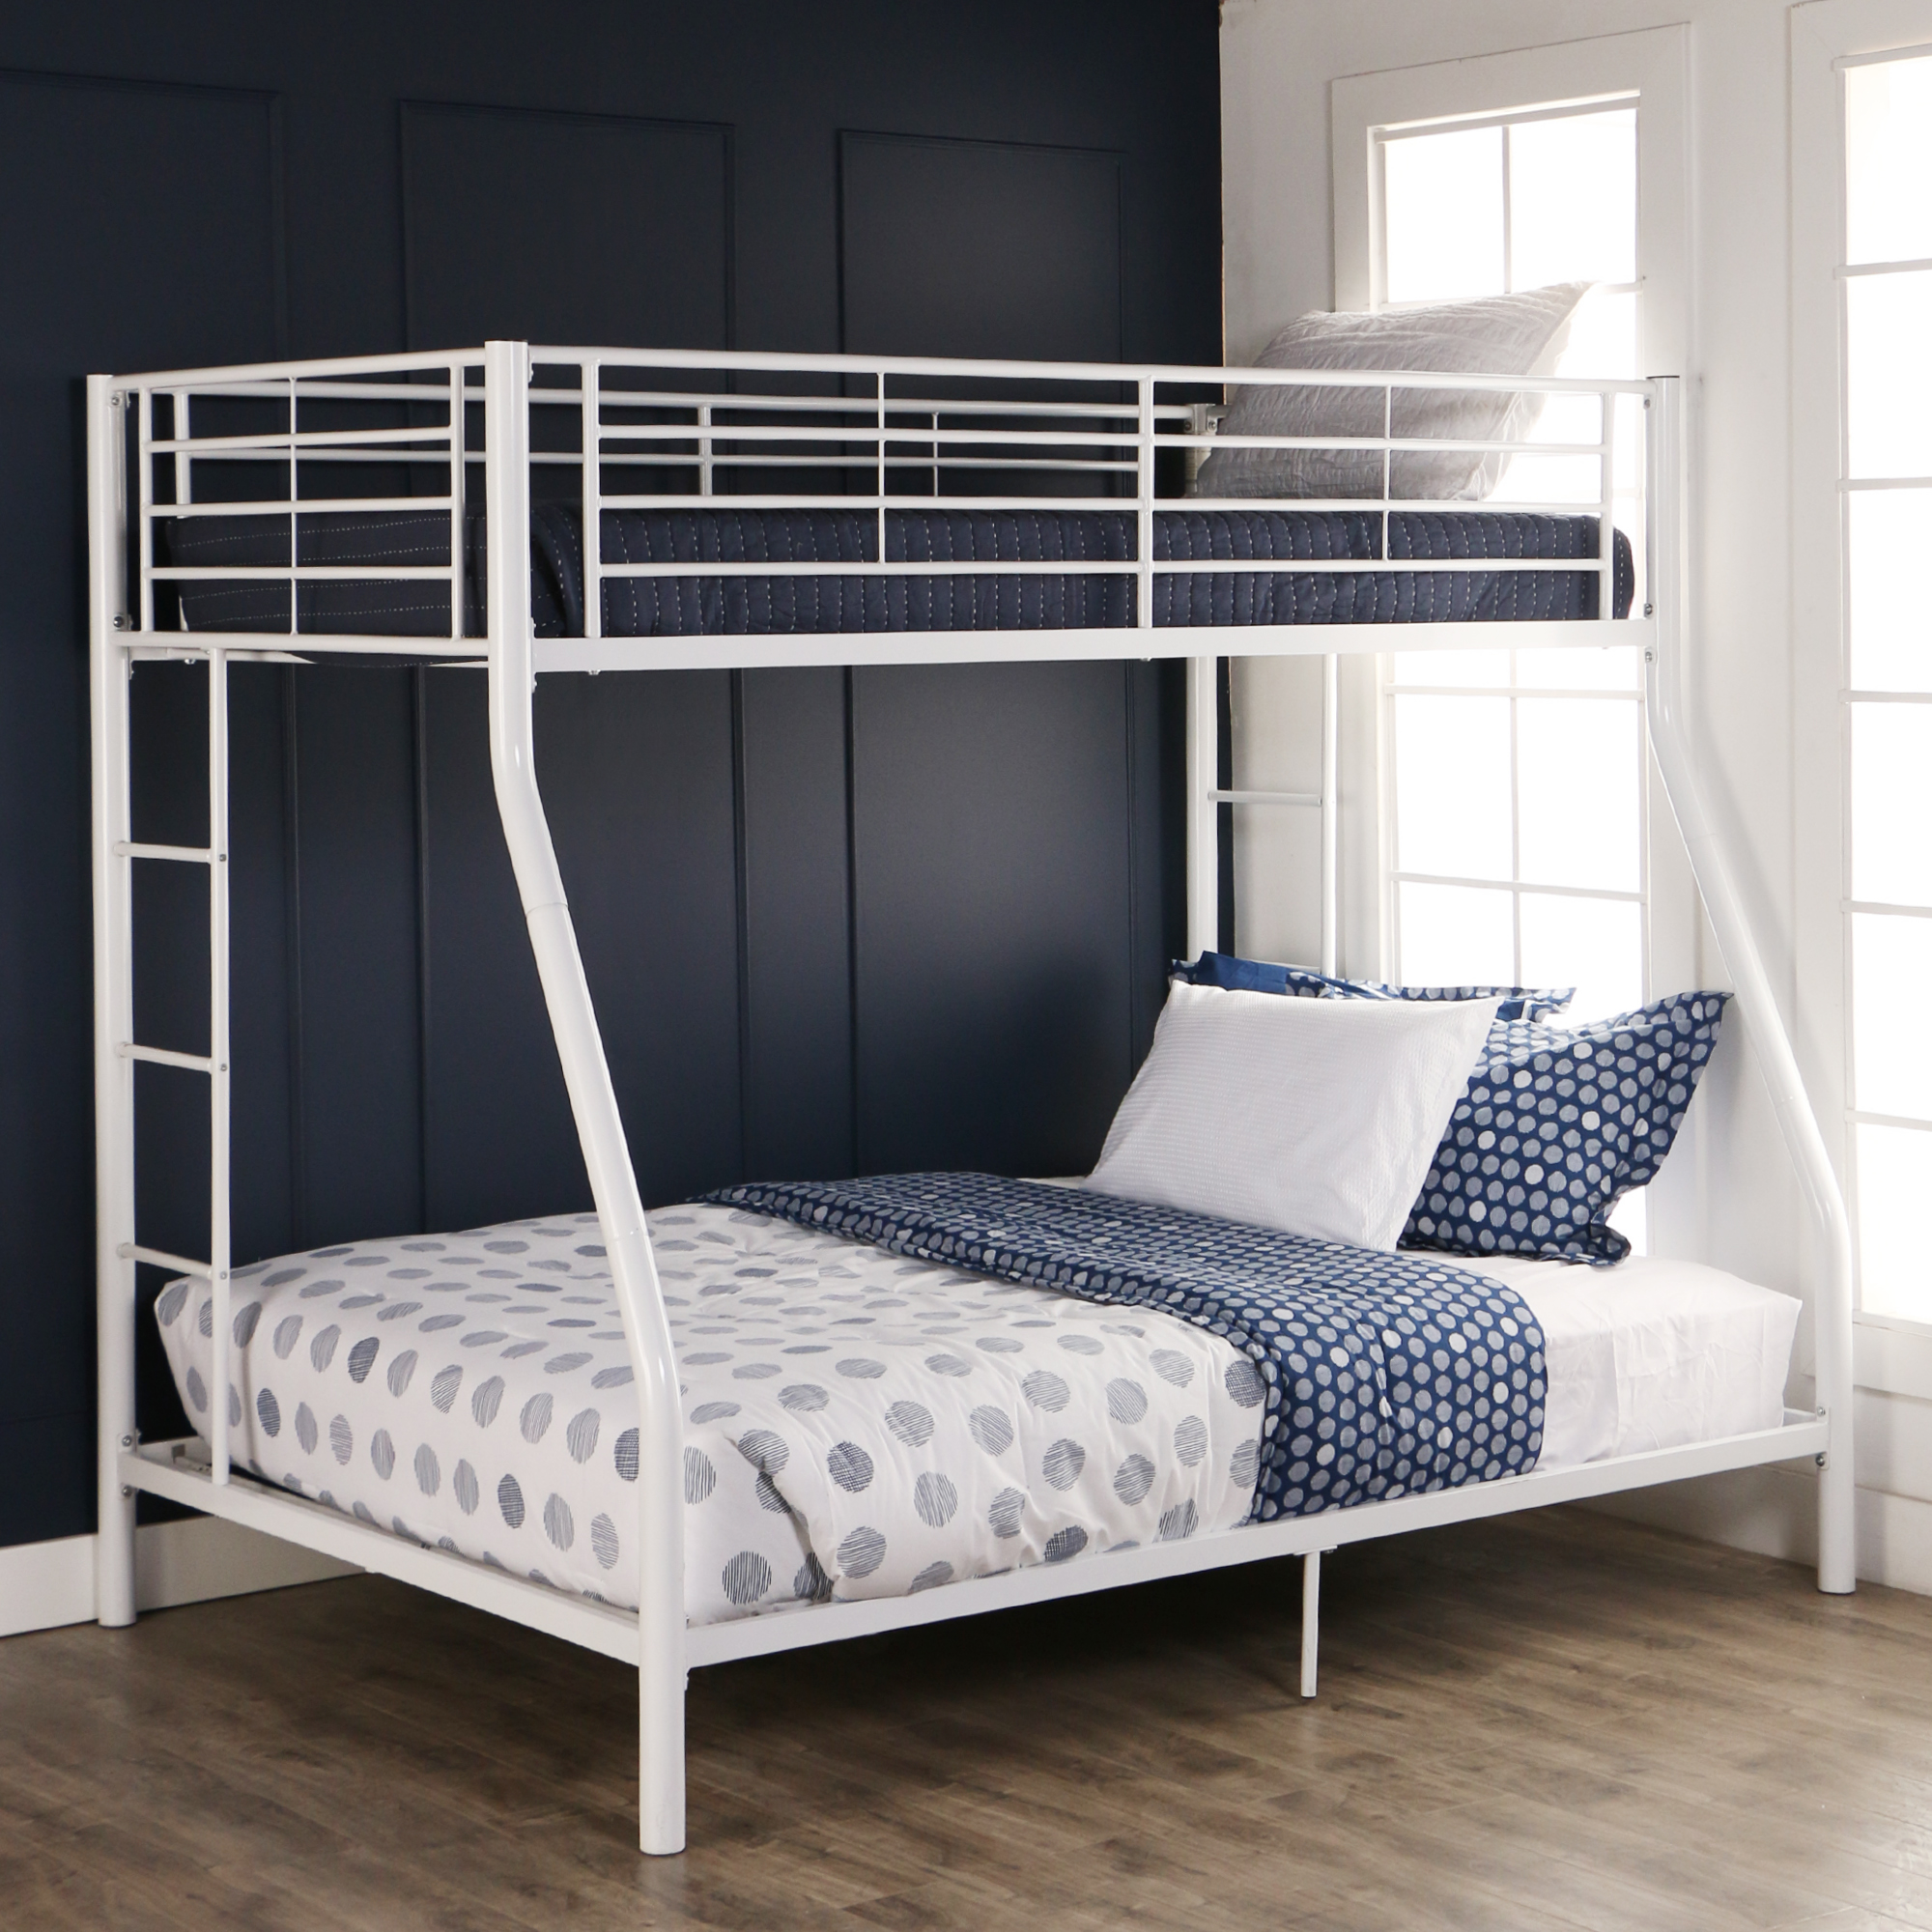 walker edison premium twin over full metal bunk bed multiple colors walmartcom